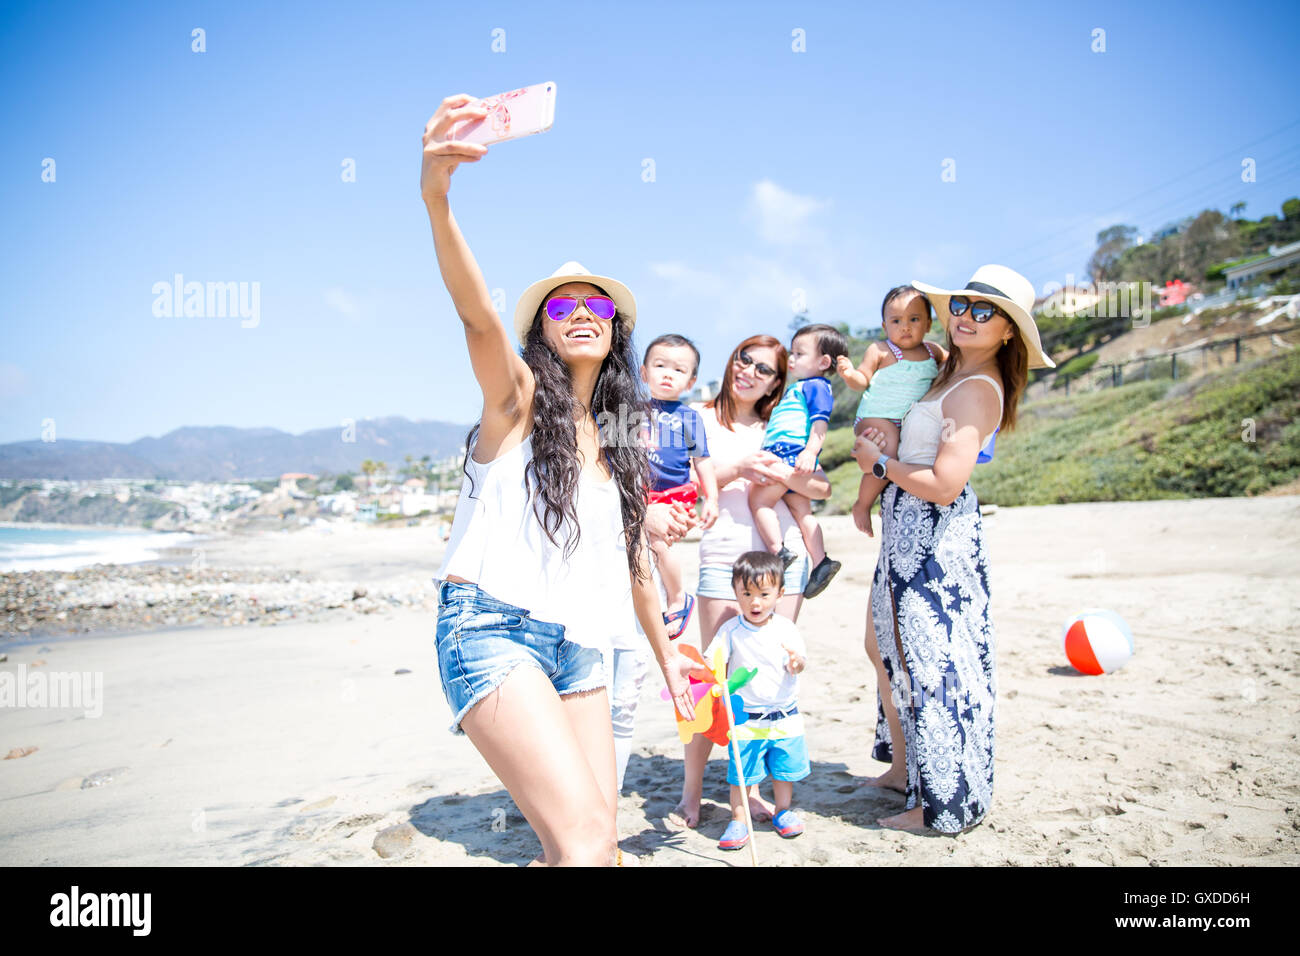 Mother taking selfie of friends and babies on beach, Malibu, California, USA - Stock Image